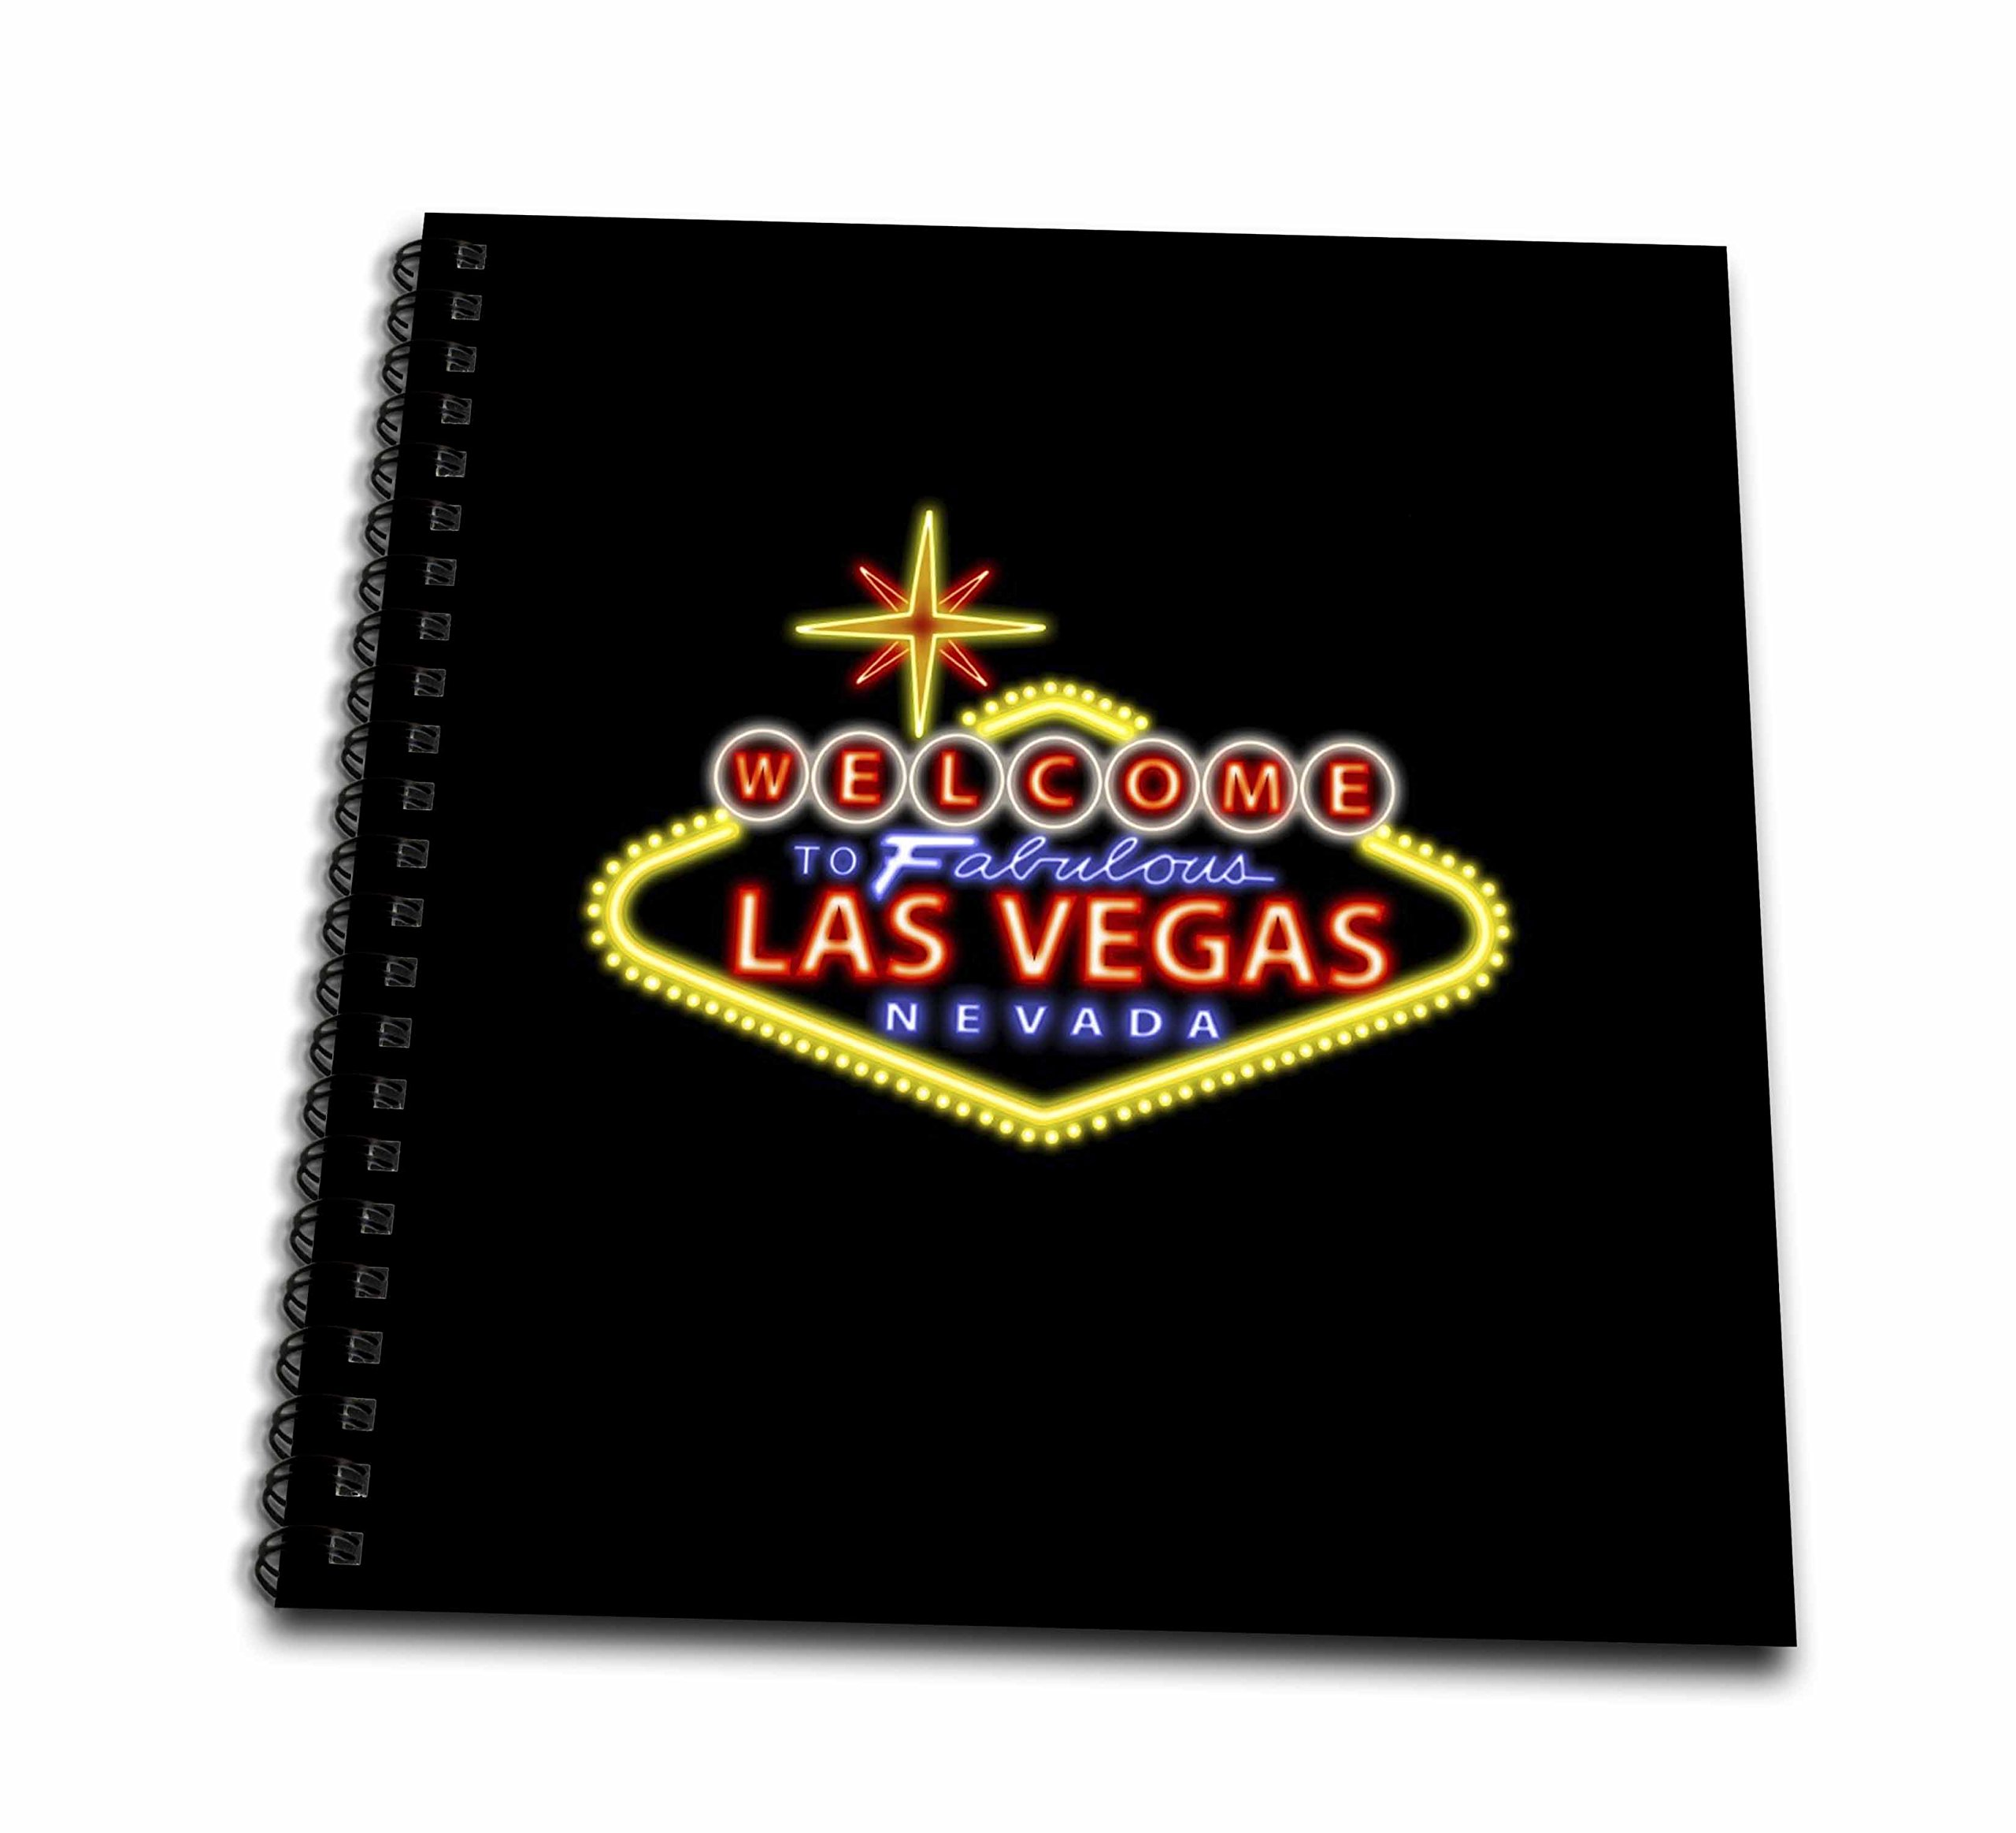 3dRose Welcome to Fabulous Las Vegas Nevada - Memory Book, 12 by 12-Inch (db_123044_2) by 3dRose